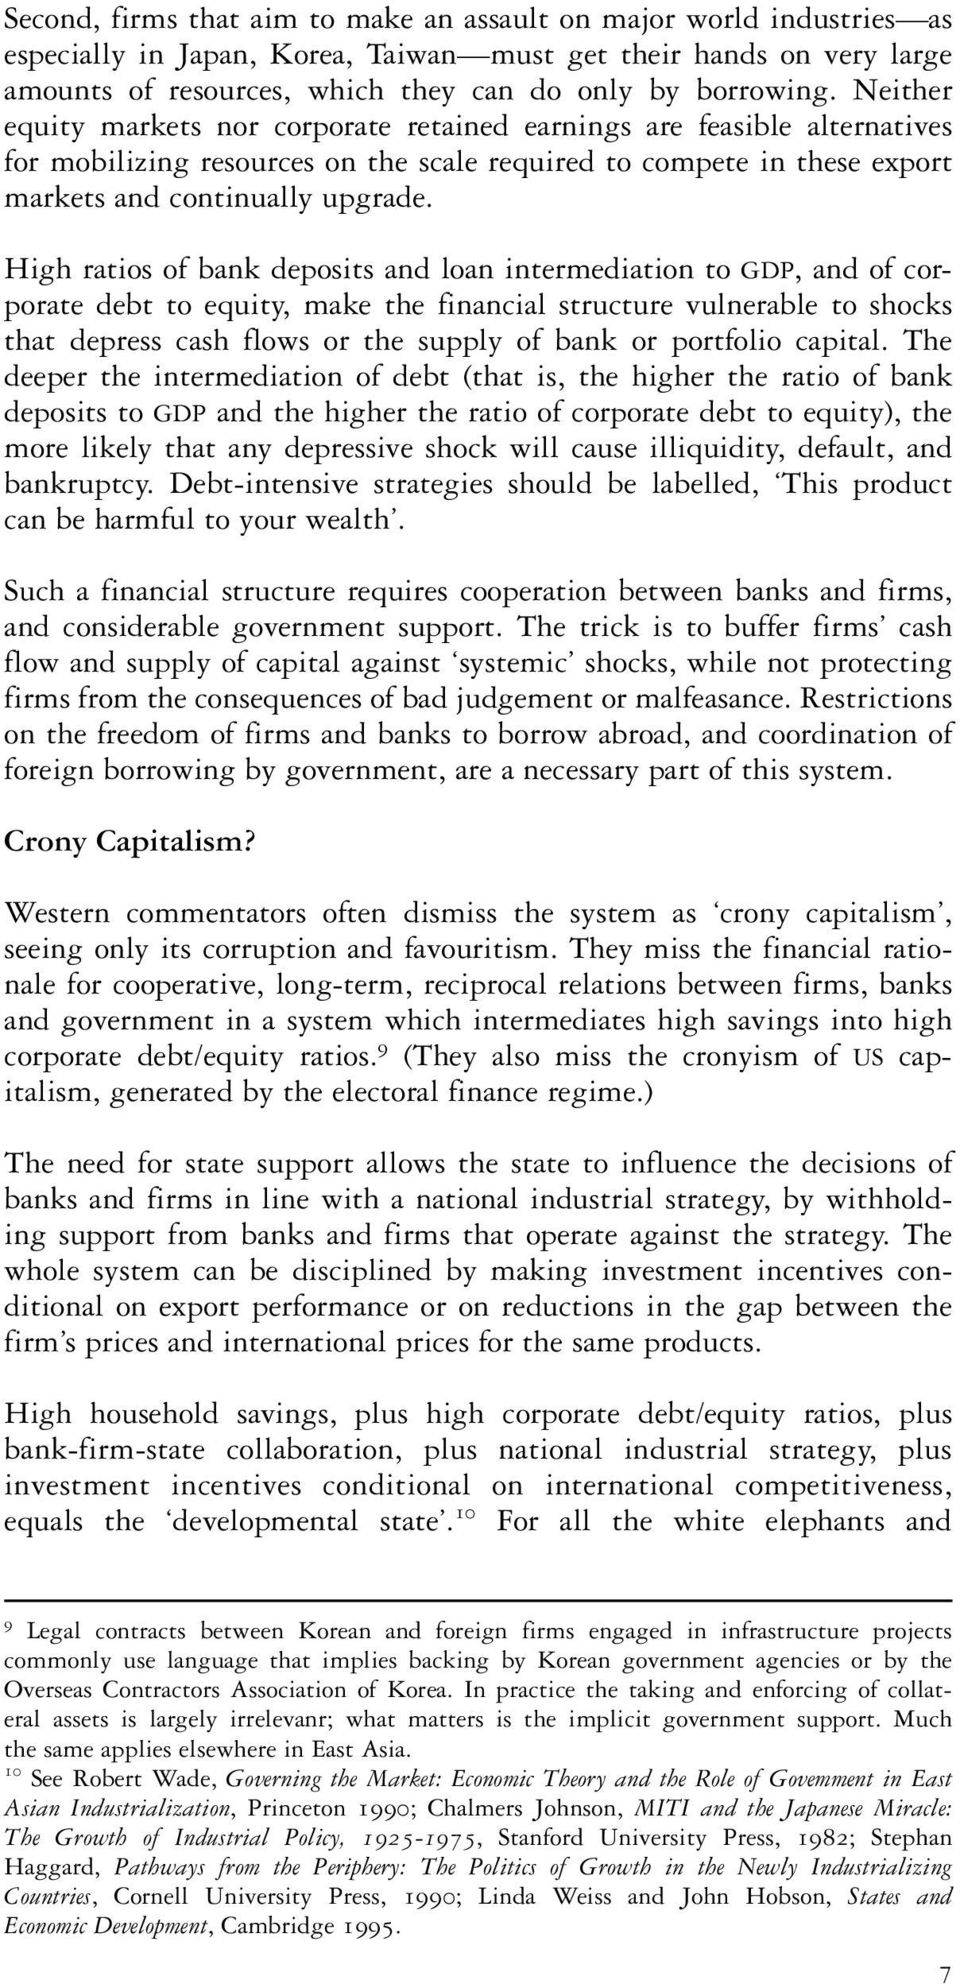 High ratios of bank deposits and loan intermediation to GDP, and of corporate debt to equity, make the financial structure vulnerable to shocks that depress cash flows or the supply of bank or